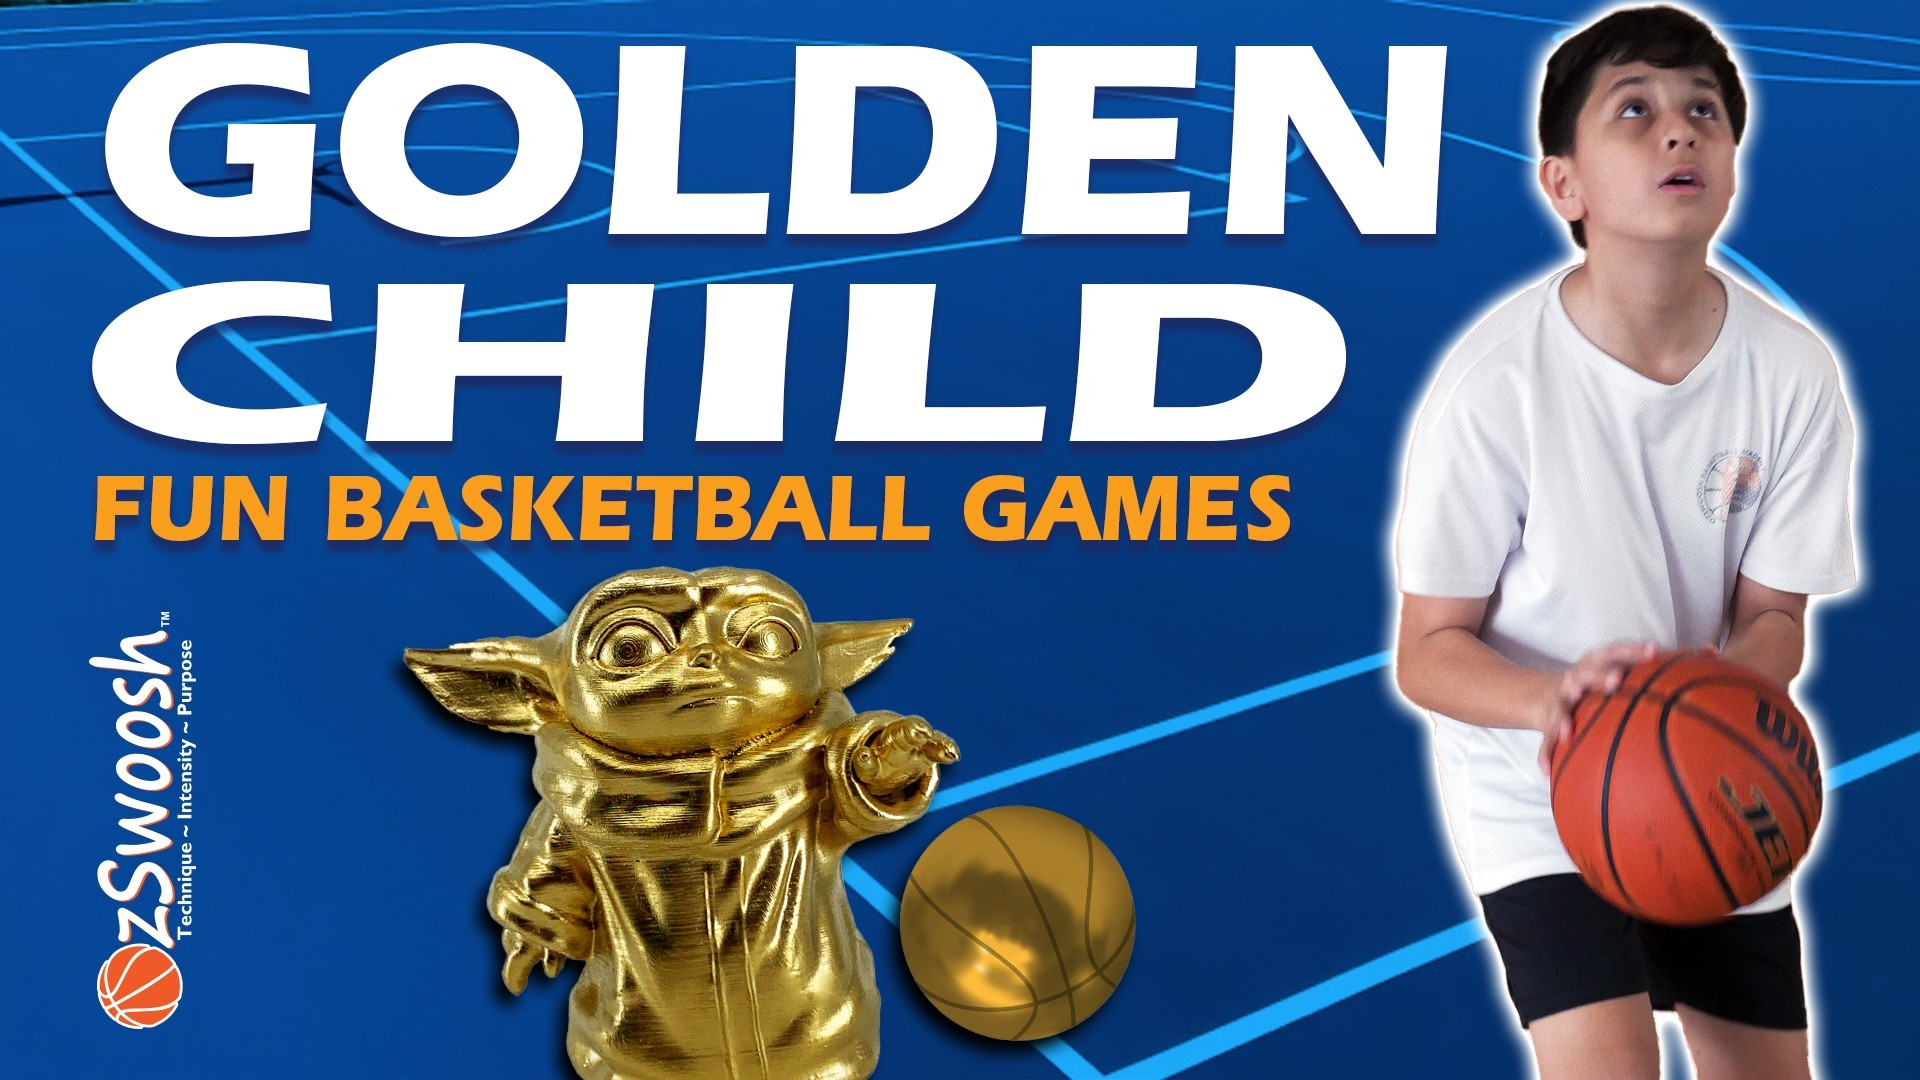 Fun Youth Basketball Drills For Kids - Golden Child (Competitive Game)